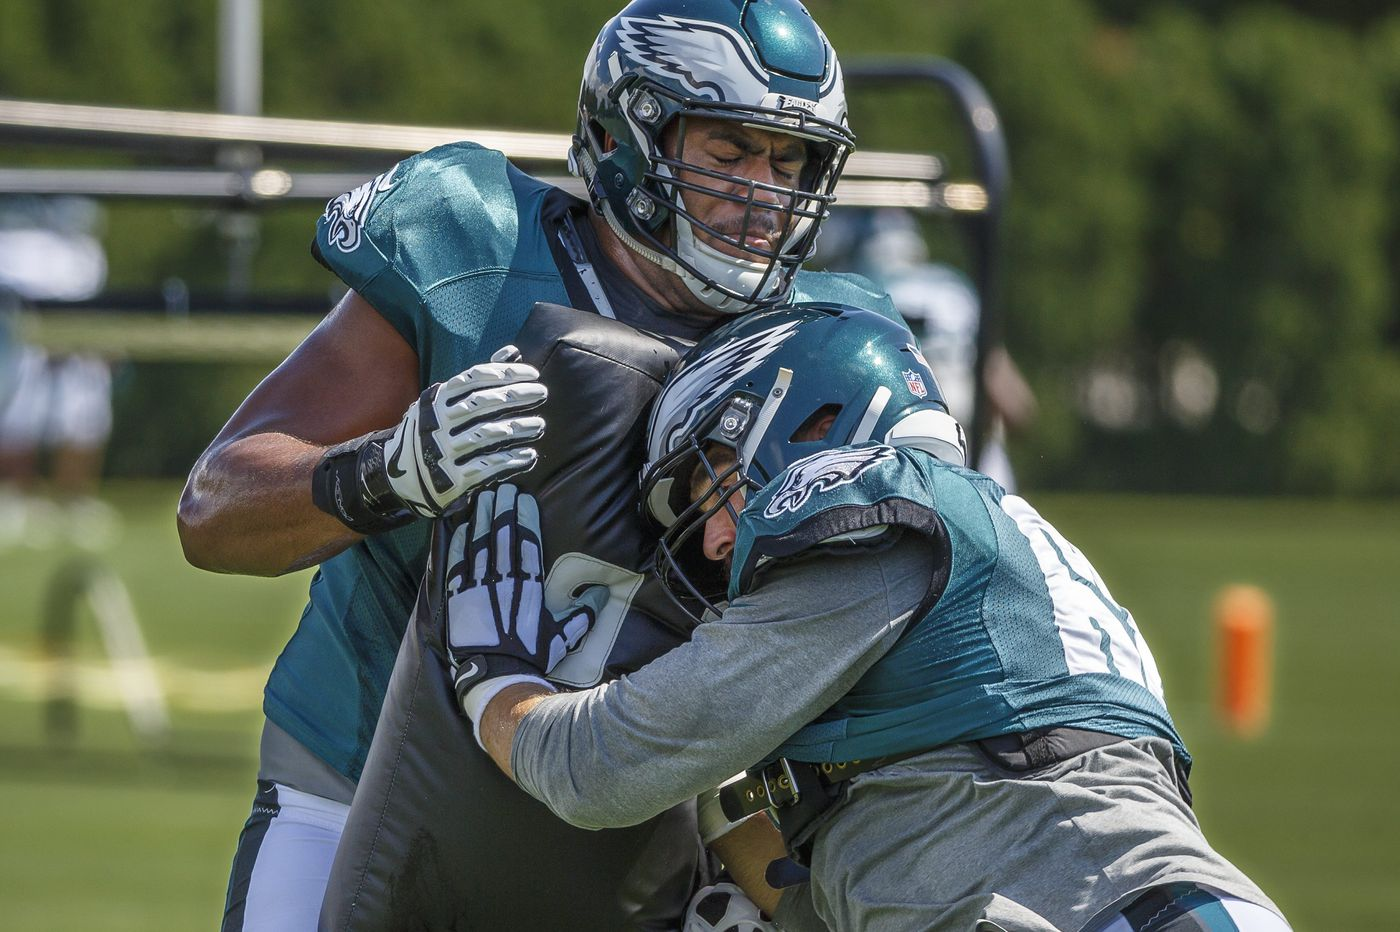 Could Jordan Mailata be the Eagles' starting left tackle in 2019?